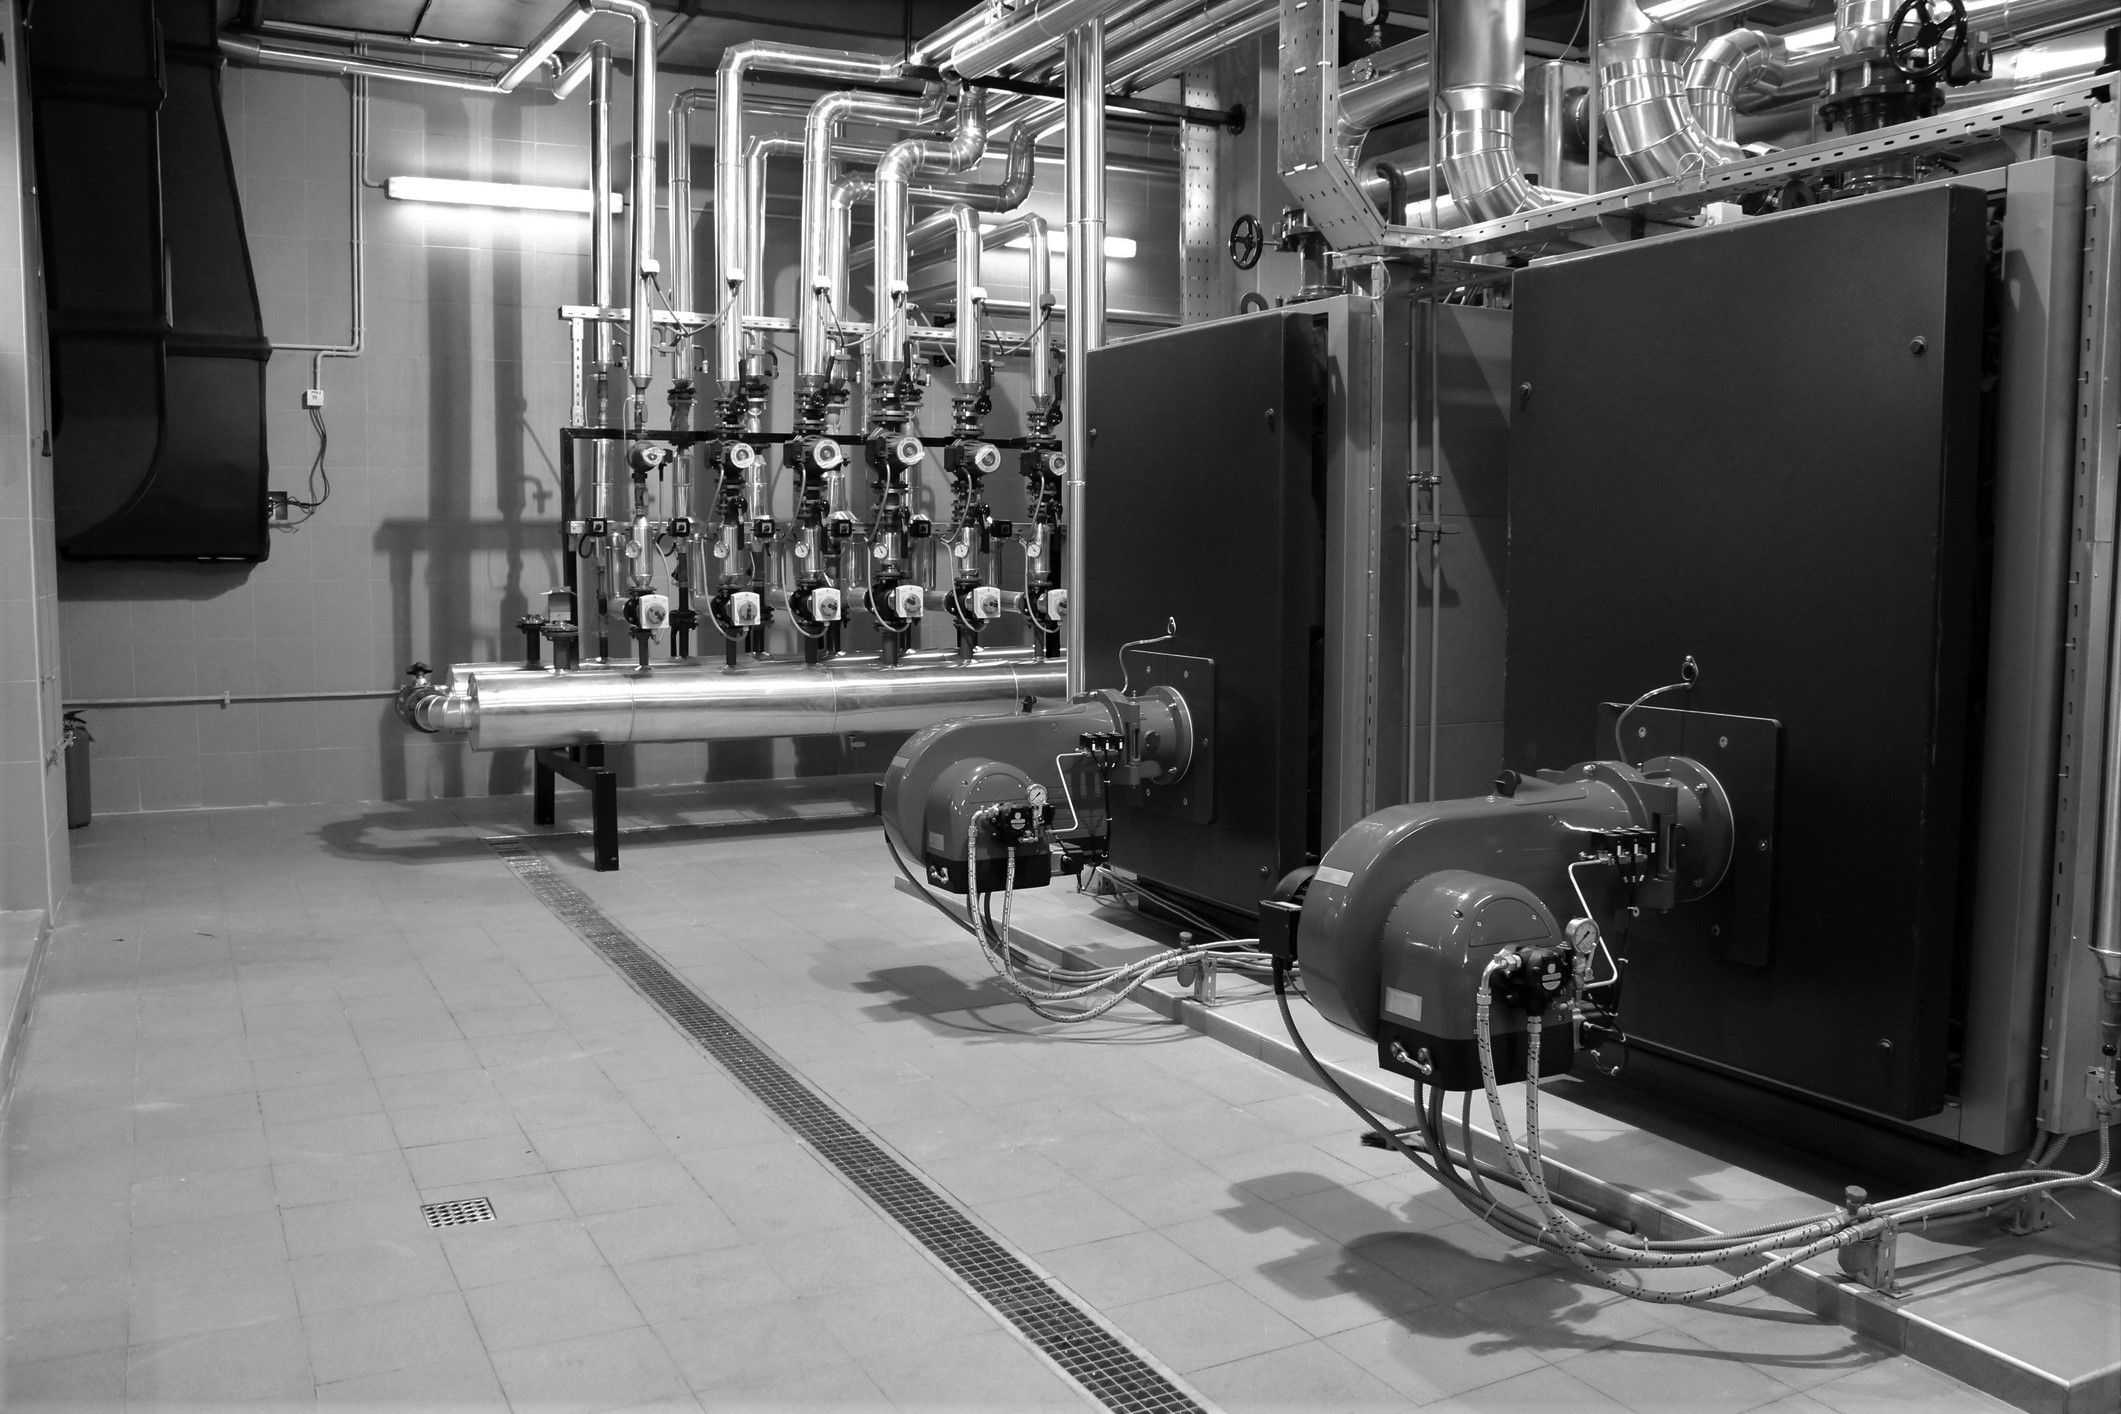 Inside of a boiler room system